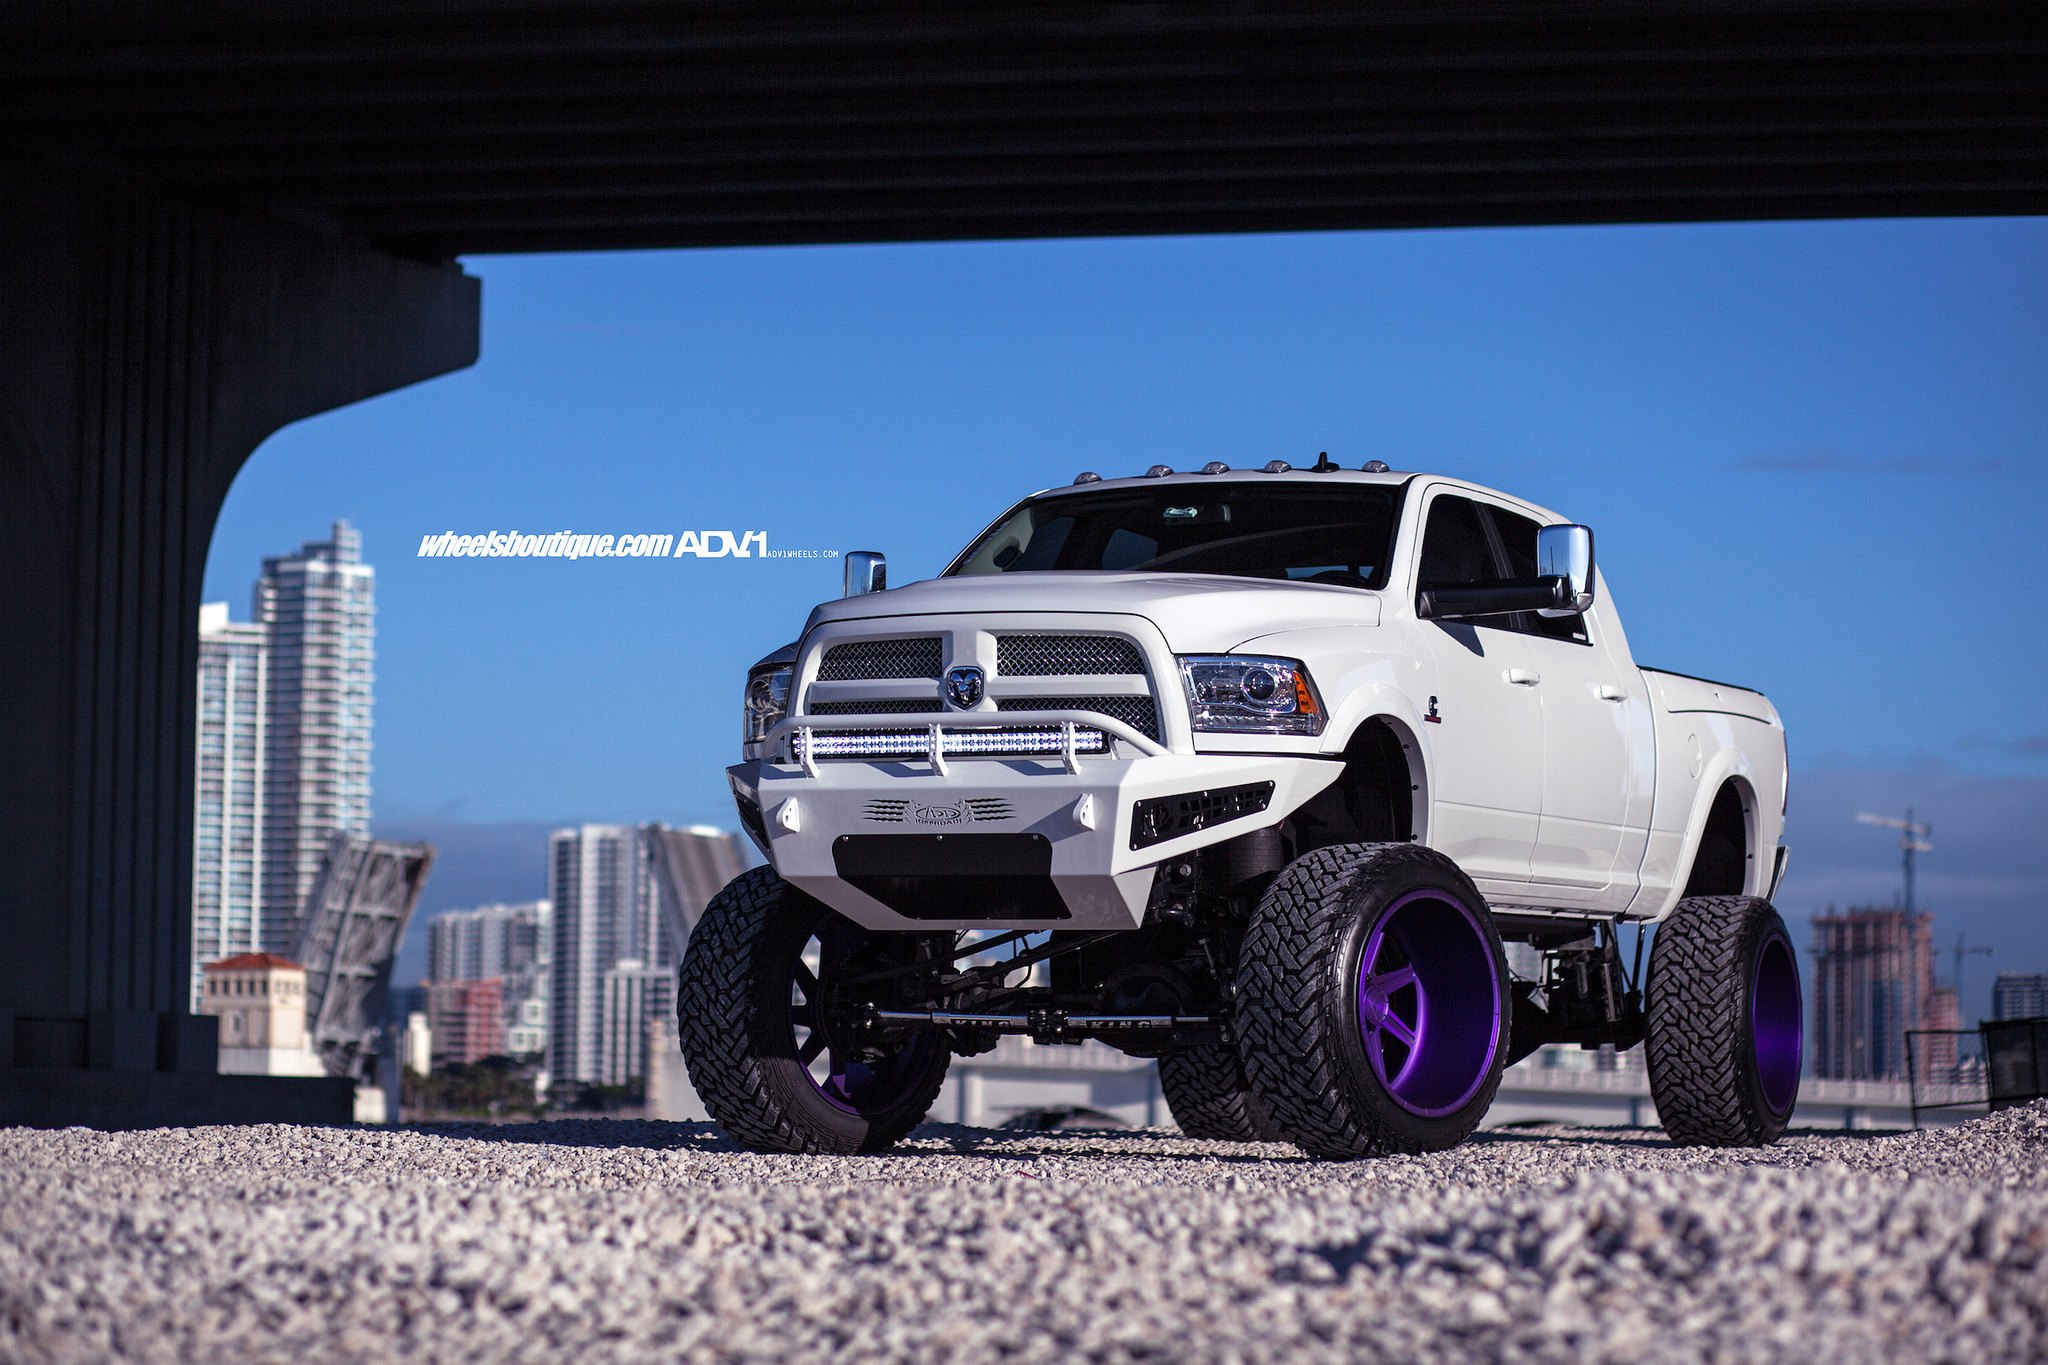 Custom Dodge Ram Images Mods Photos Upgrades Gallery 2012 6 Inch Lift White Rino Lifted Cummins Photo By Adv1